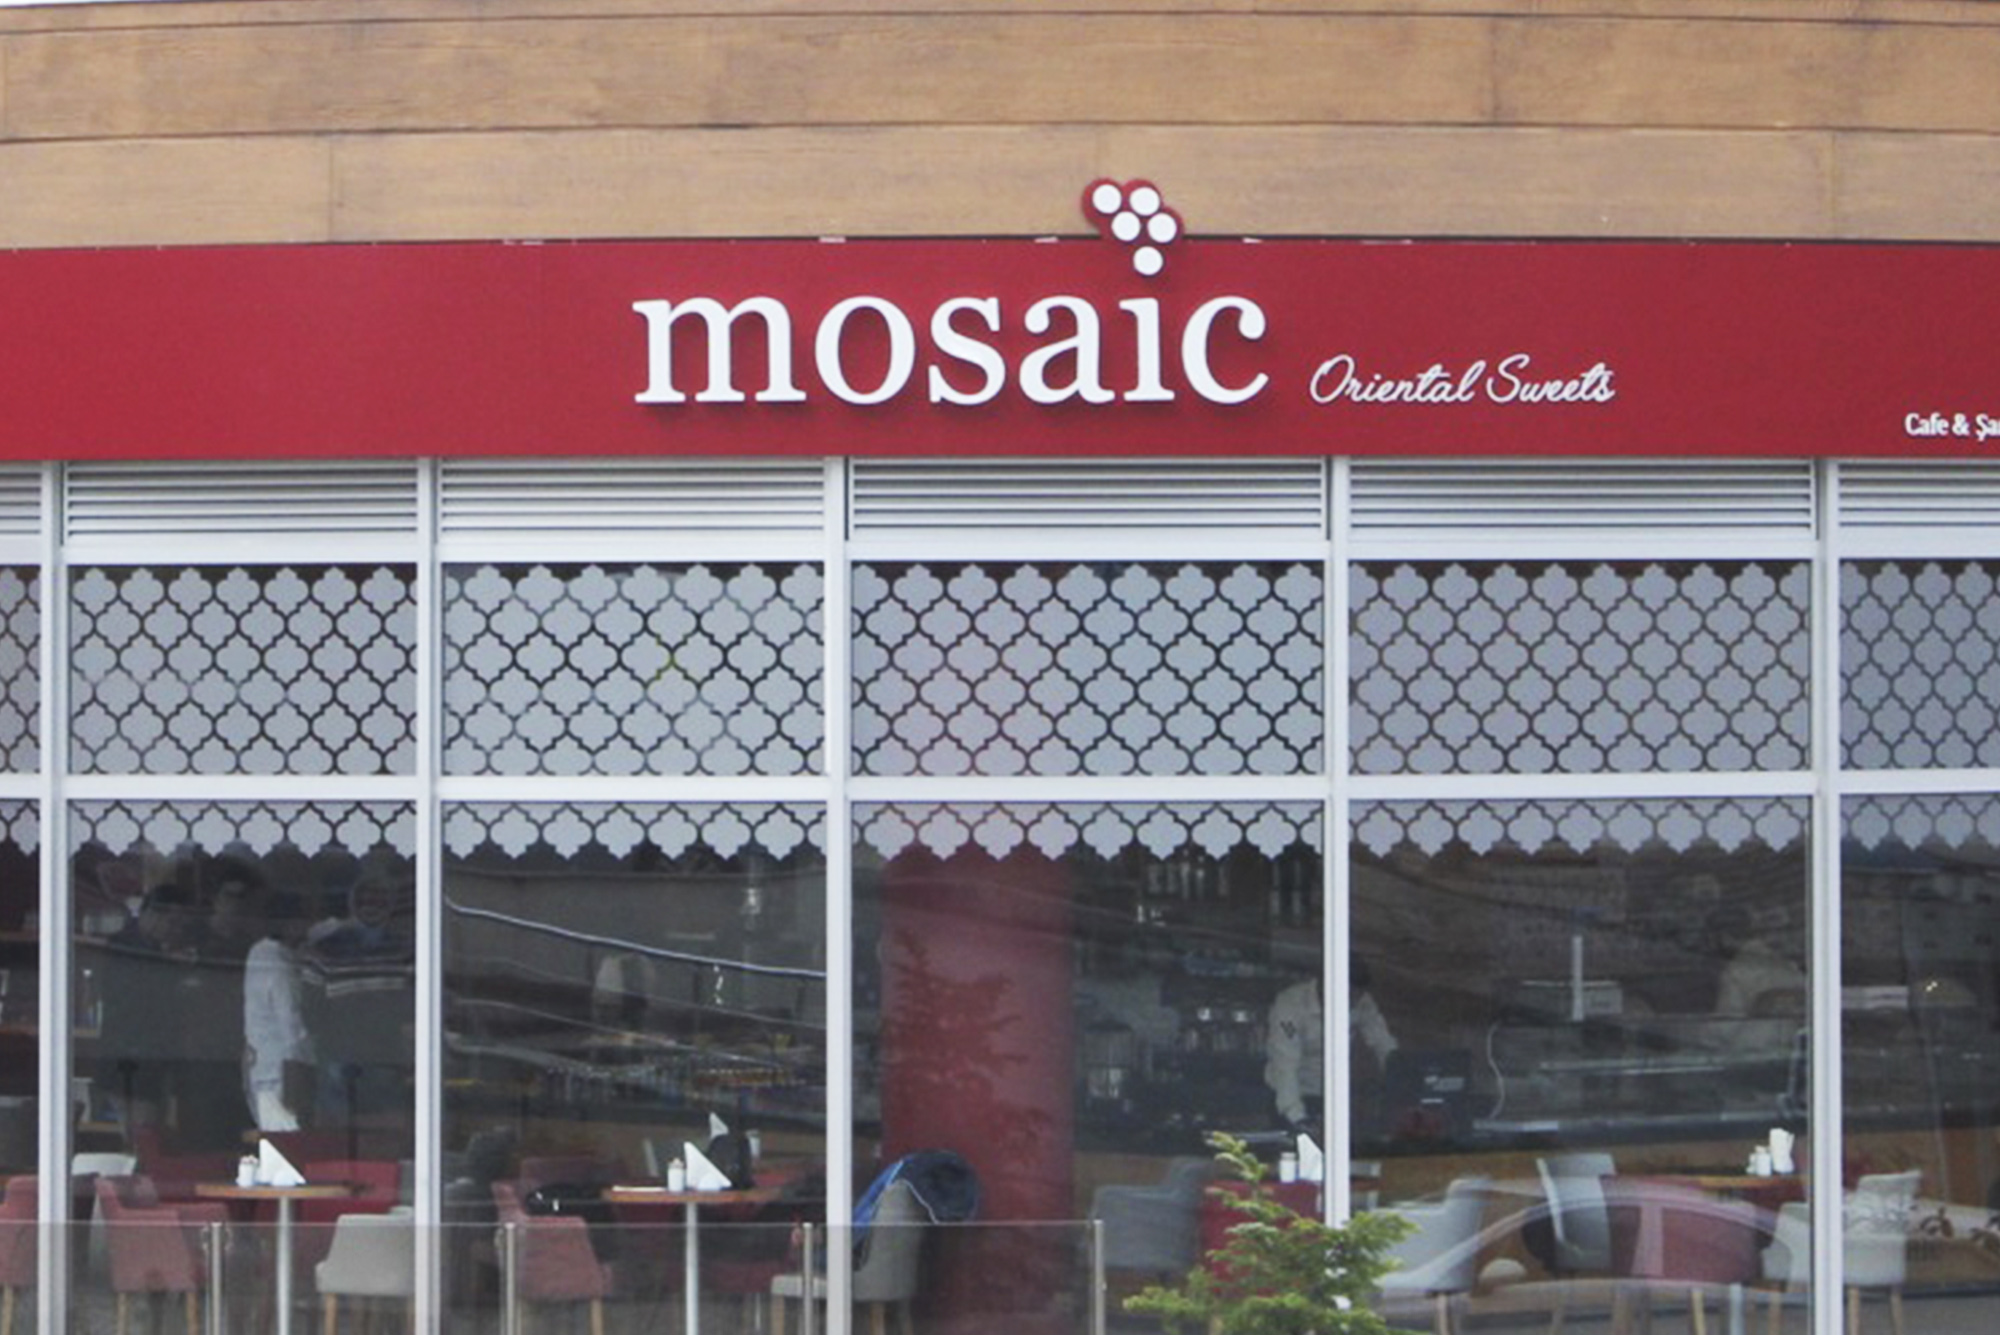 Mosaic Outlet, cafe